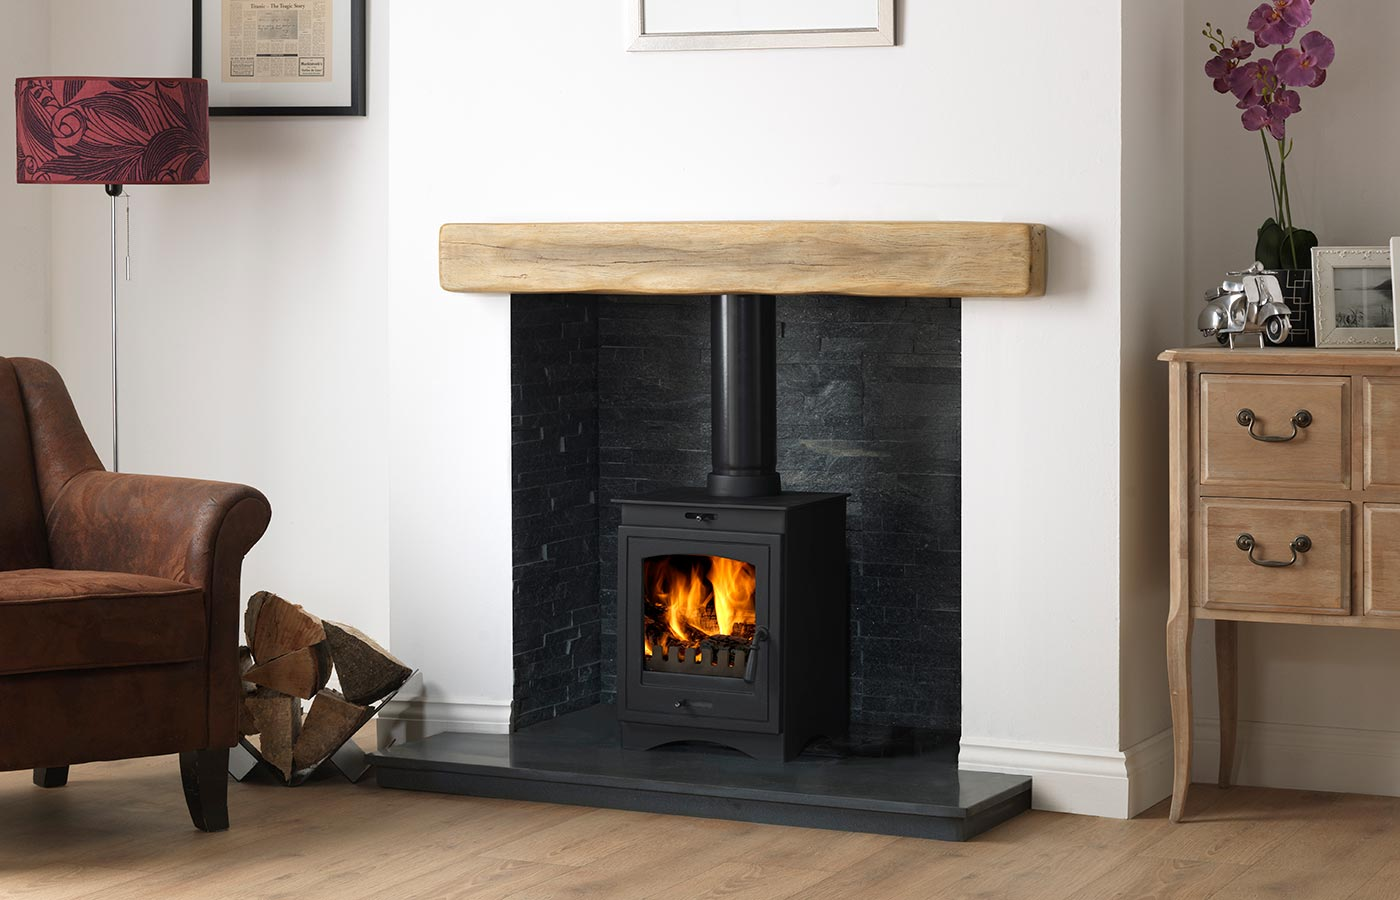 """Helios 5 Clean Burn Stove Shown with Staggered Black Slate Block Chamber, 48"""" Slabbed Honed Granite Hearth & Back Hearth and 48"""" Rustic Light Oak Effect Geocast Beam"""